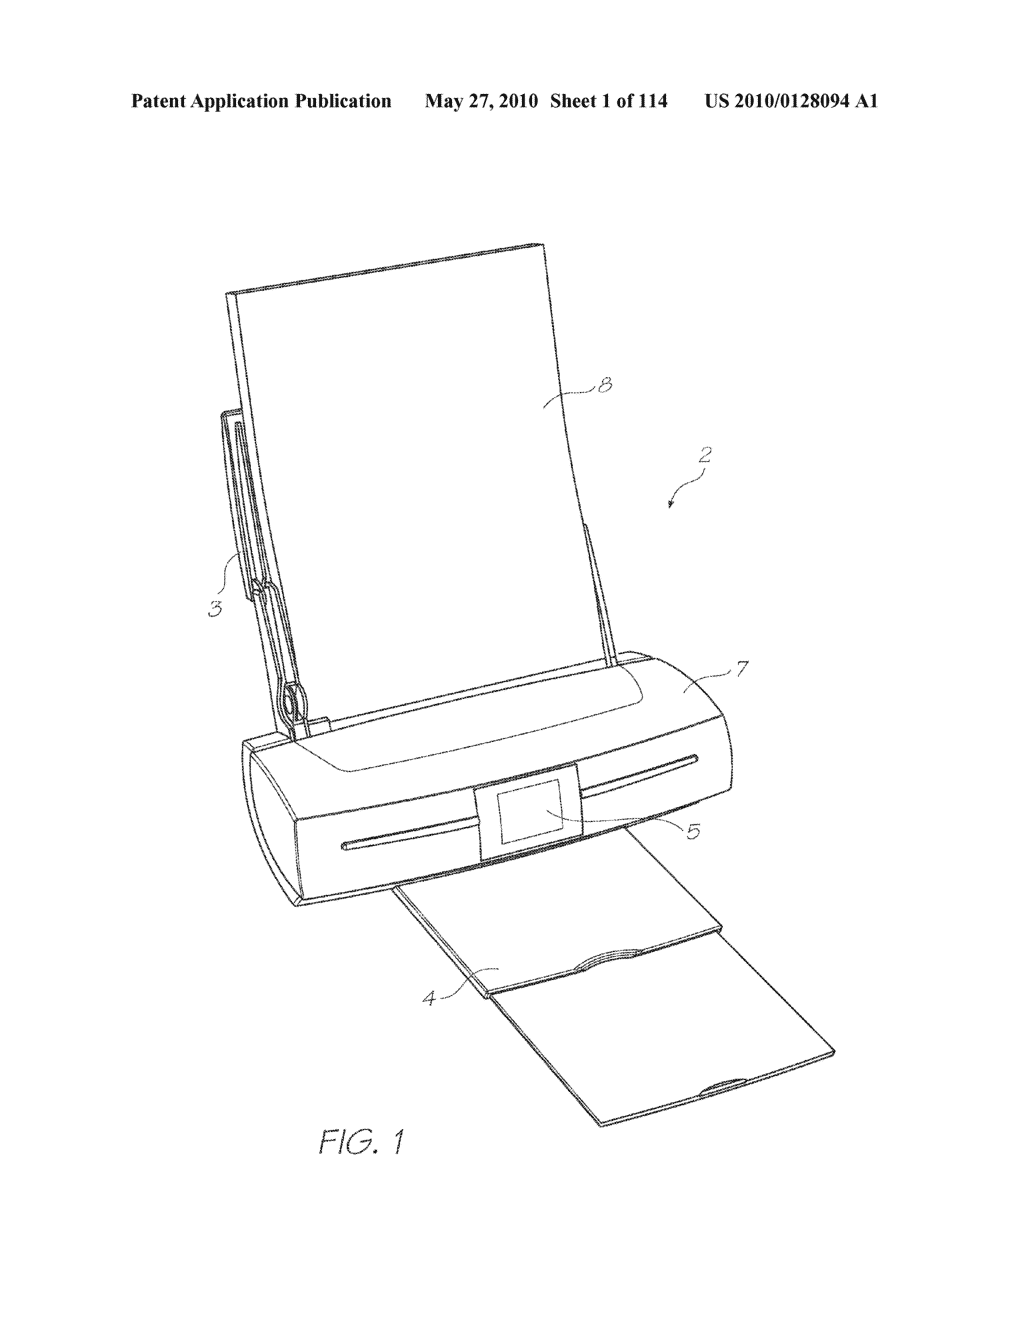 Print Engine With A Refillable Printer Cartridge And Ink Refill Port - diagram, schematic, and image 02